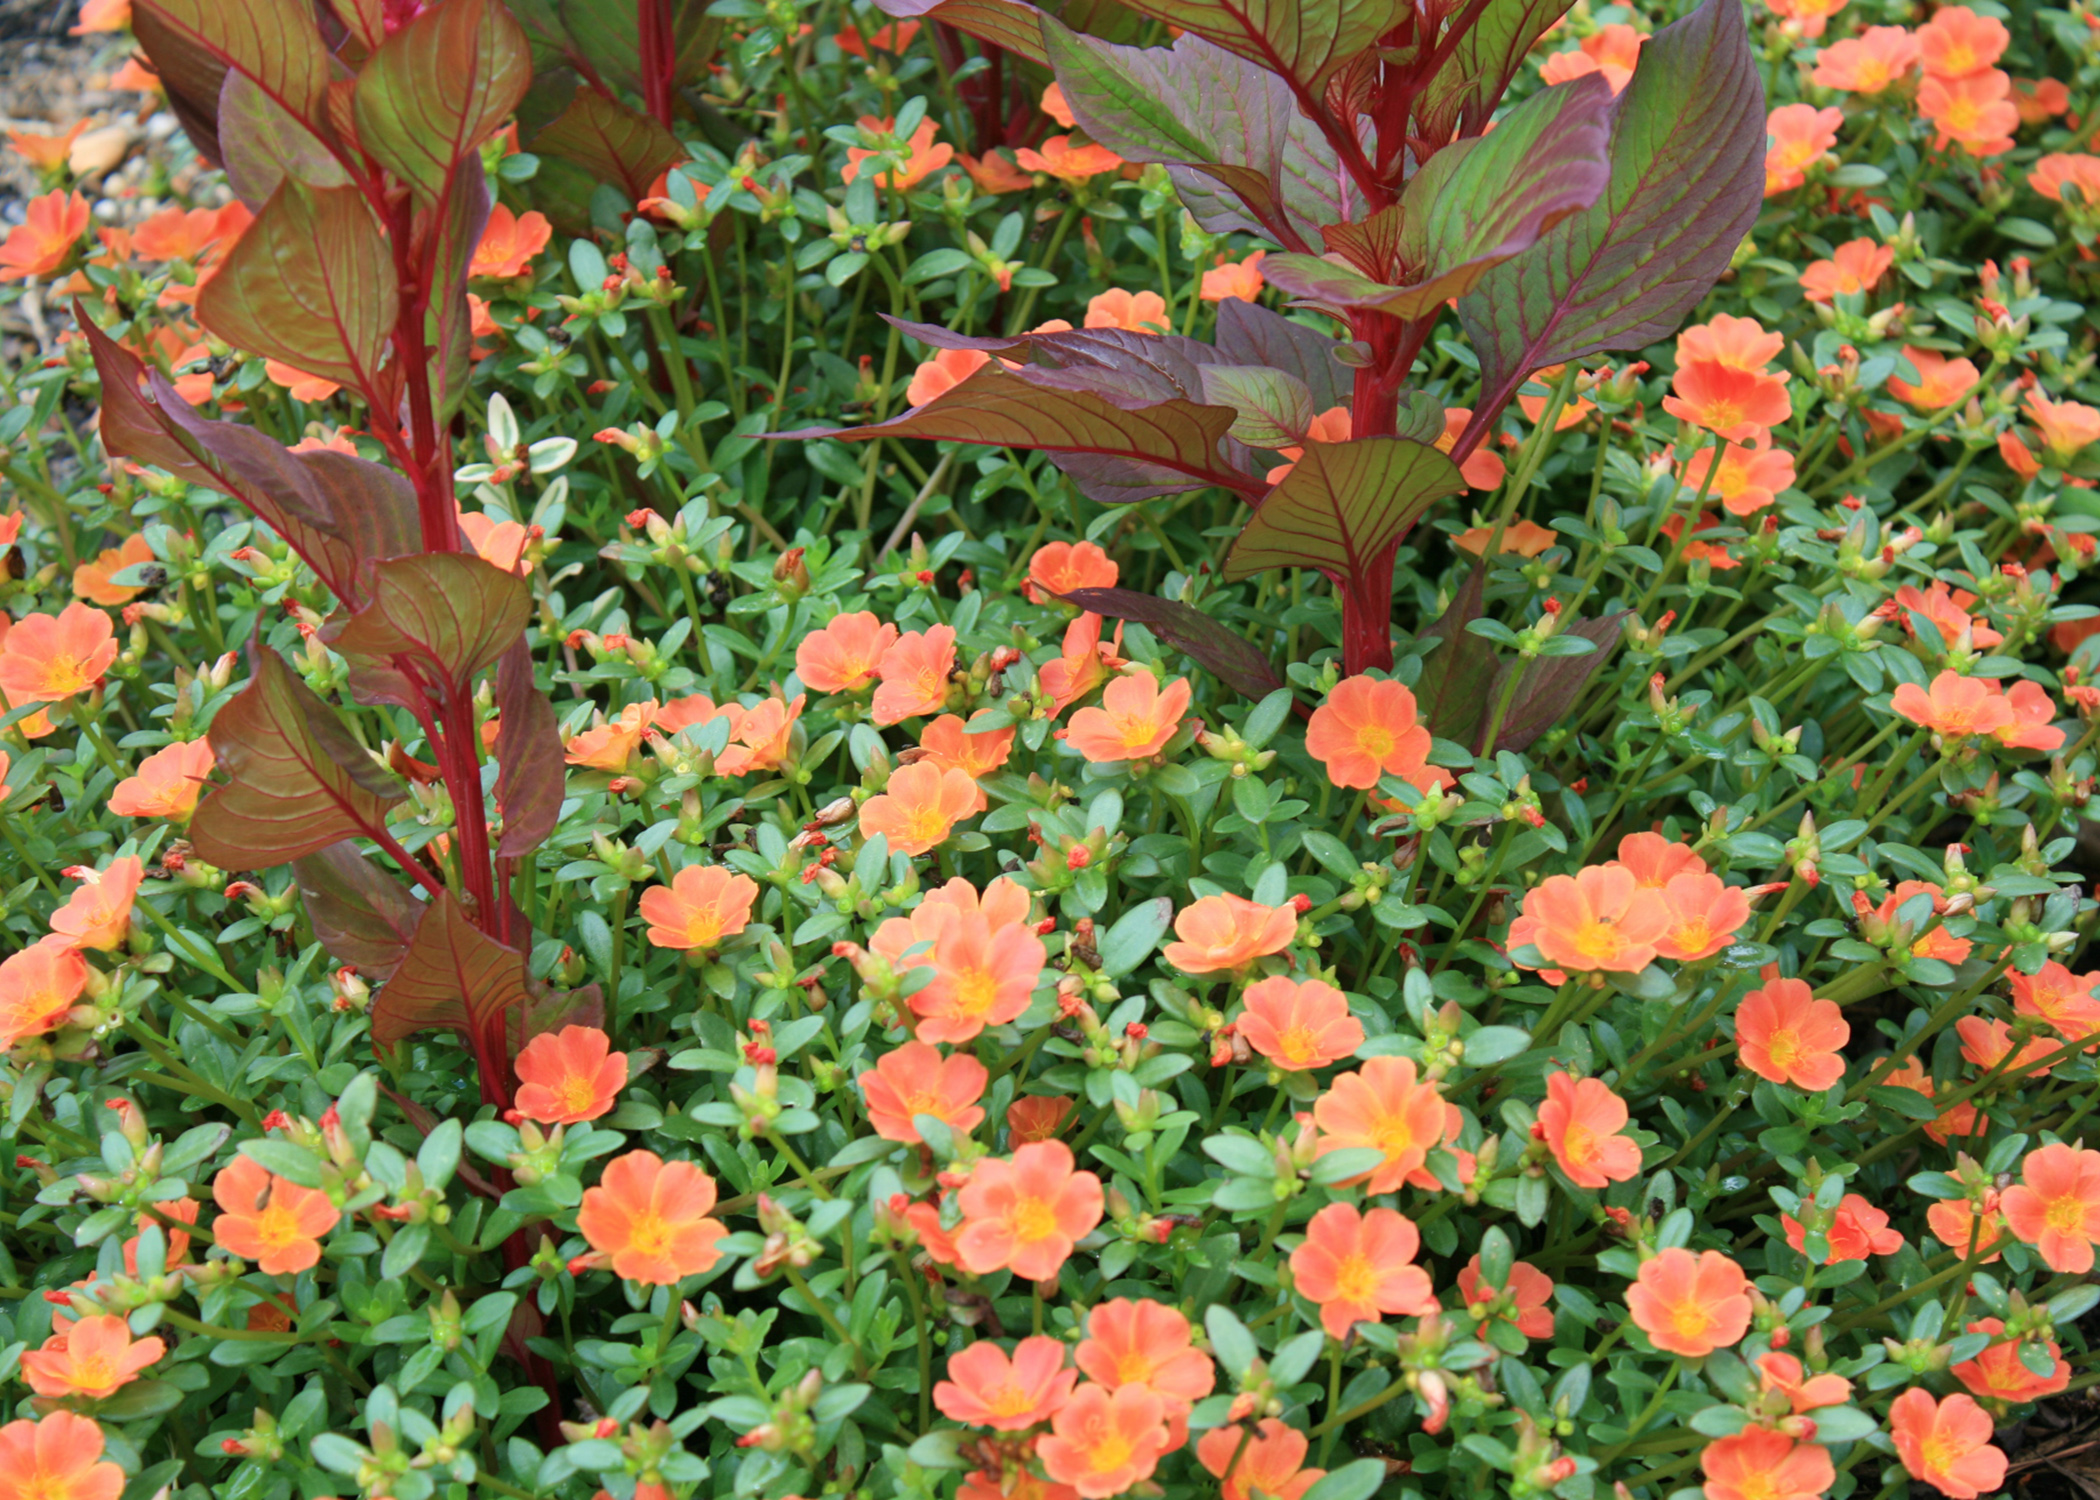 Old purslane has new value in summer heat mississippi state purslane is an old succulent that thrives in high summer temperatures new varieties such izmirmasajfo